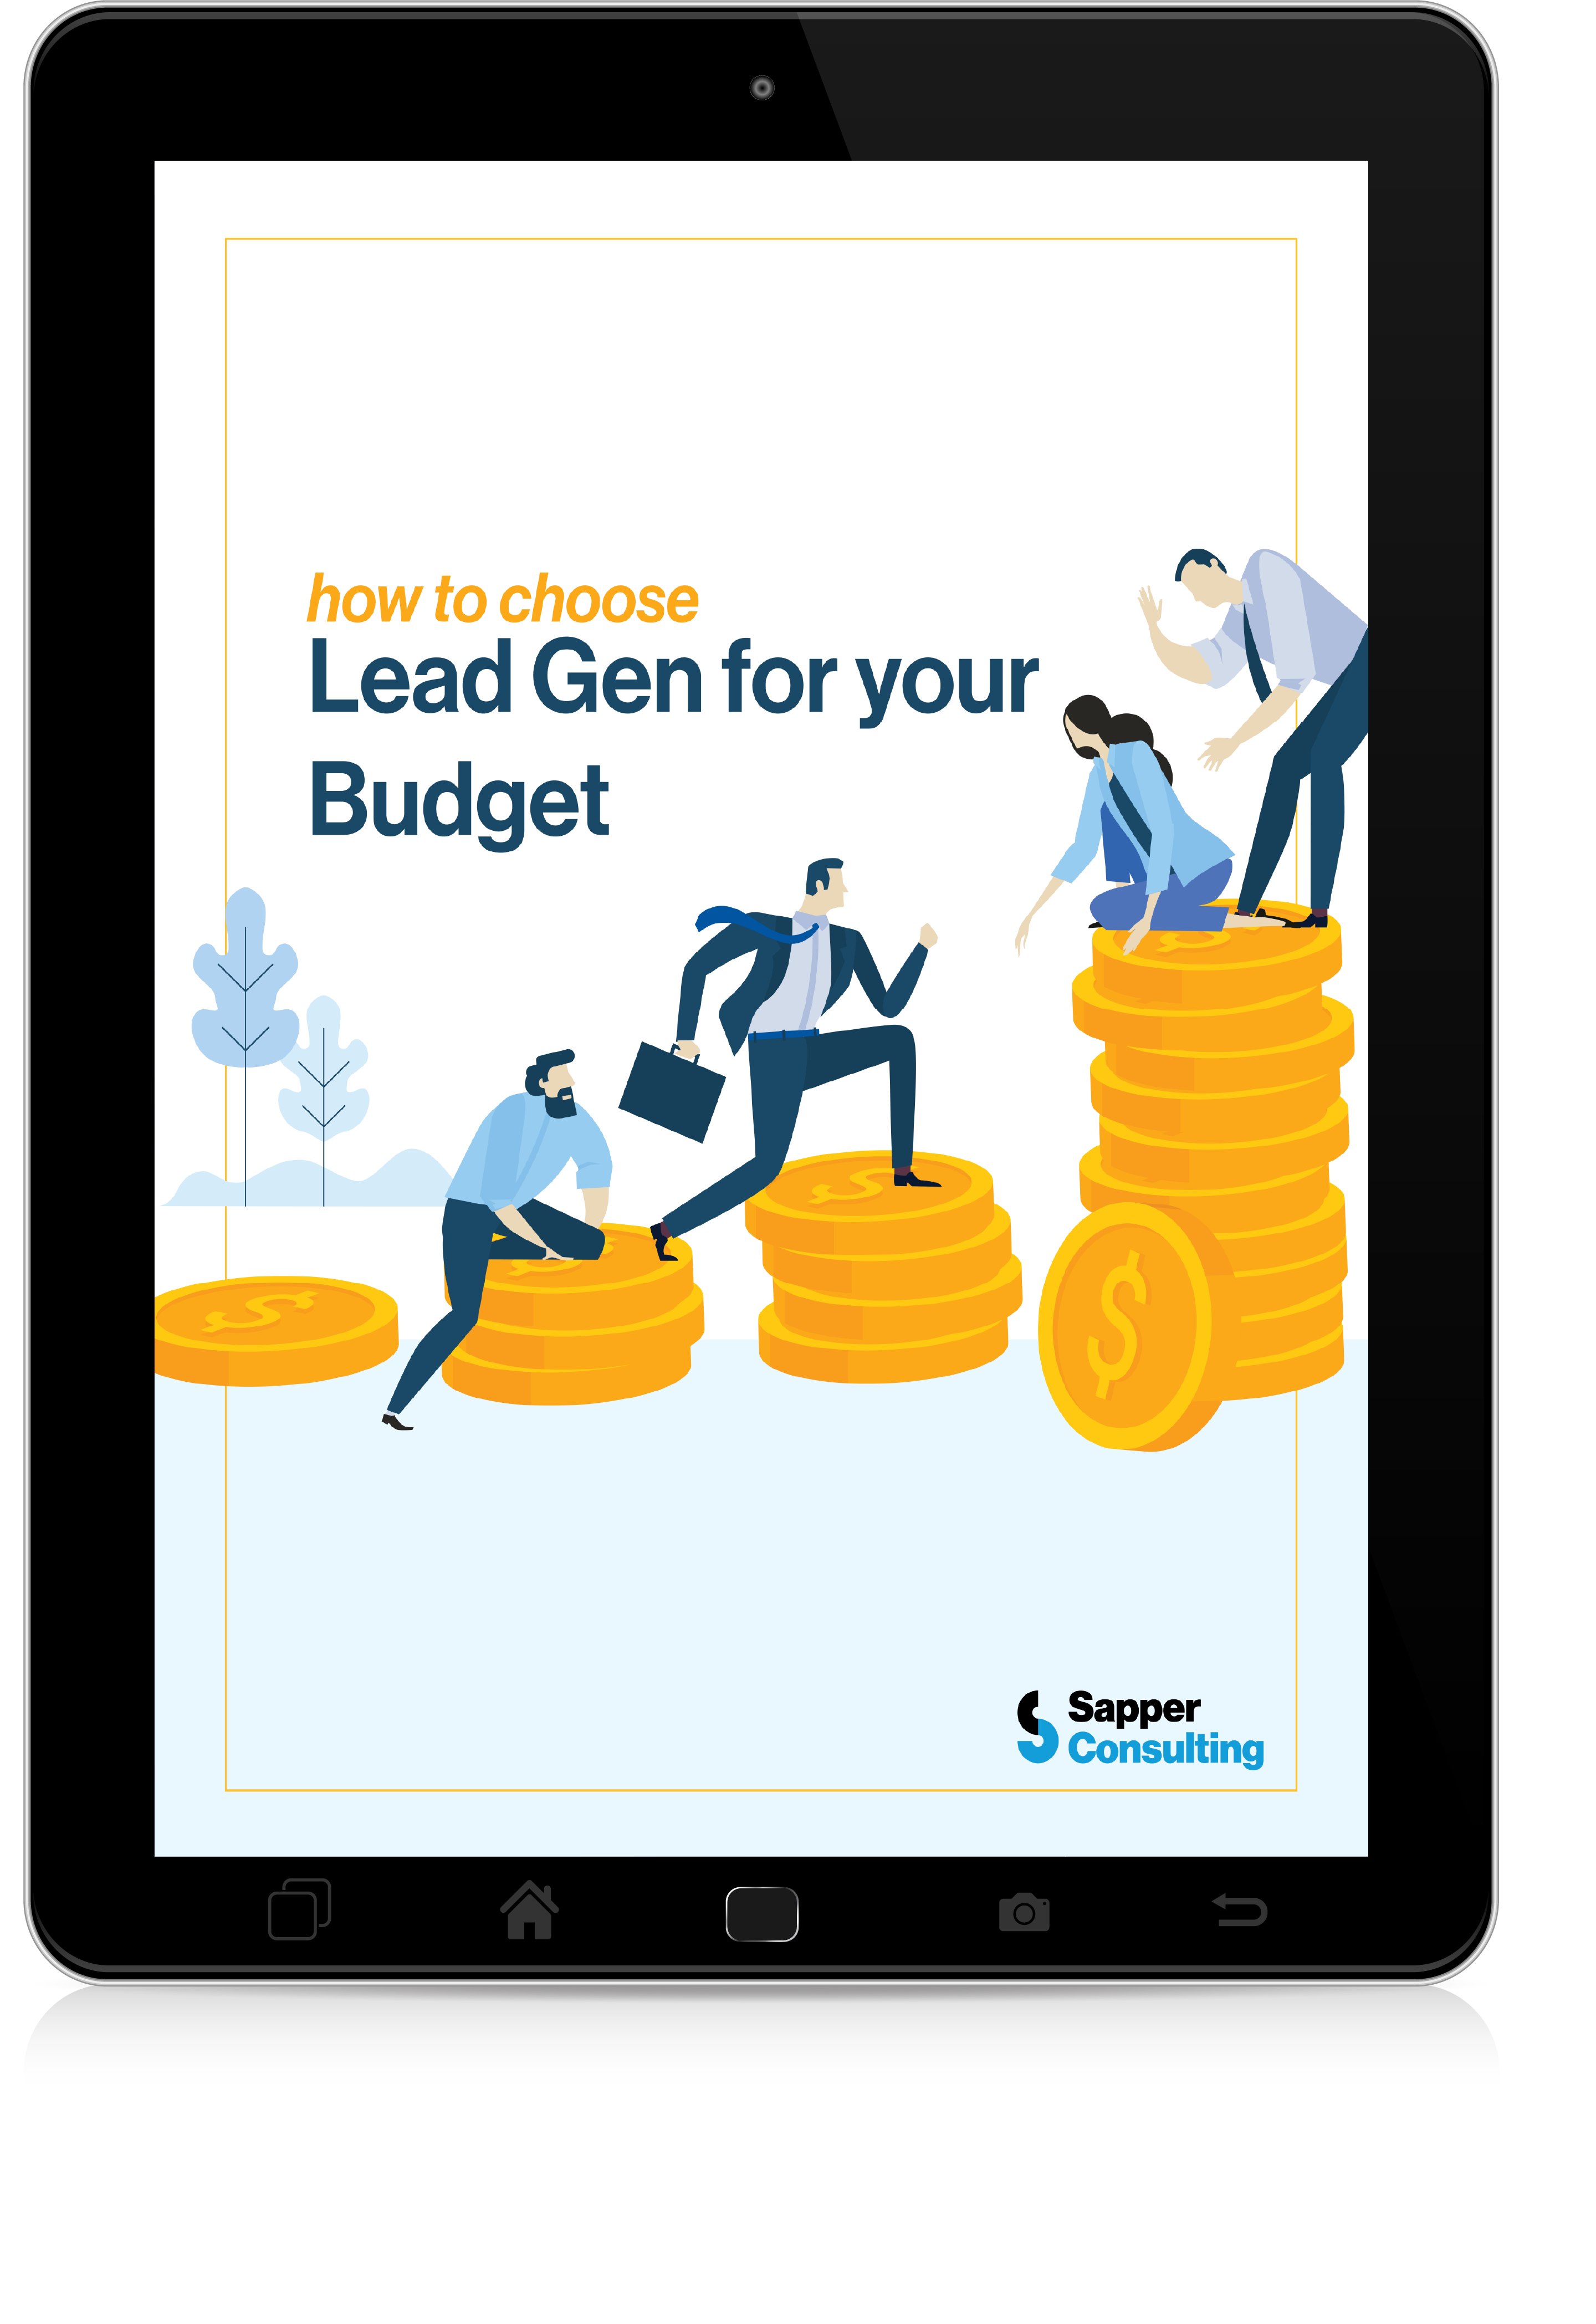 Lead Generation for your Budget